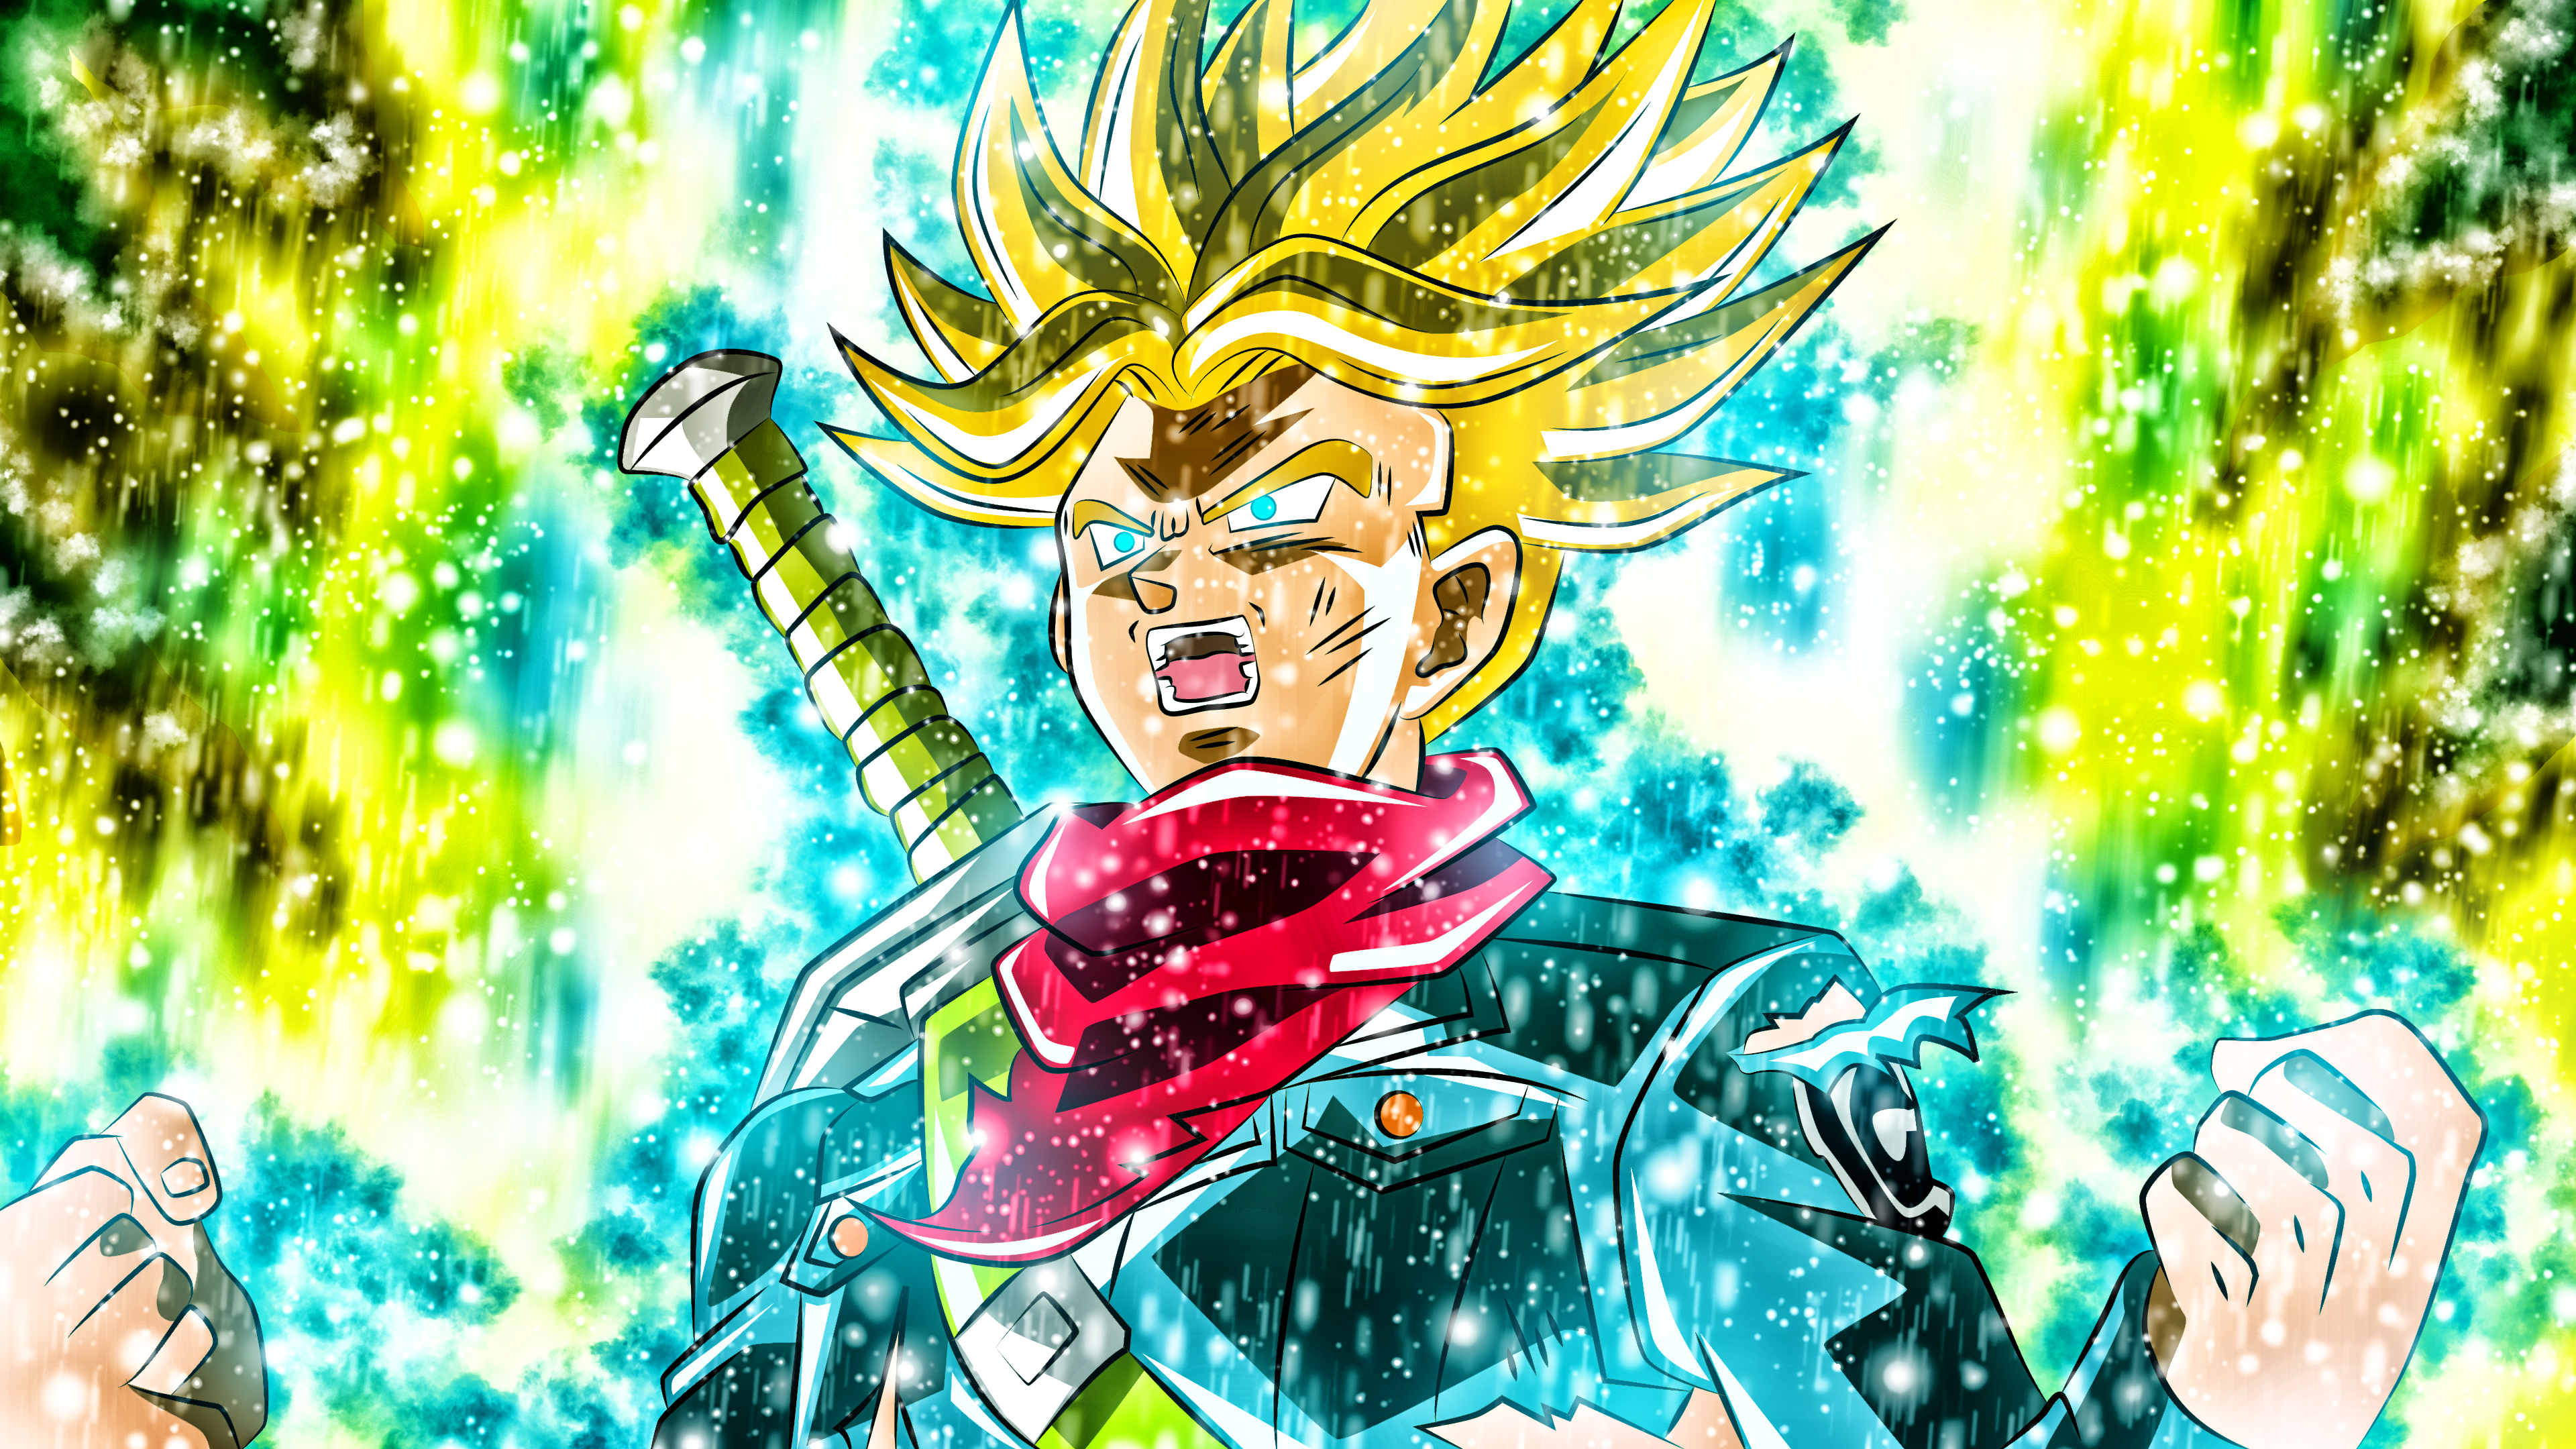 dragon ball z hd wallpapers Dbz Dragon ball Dragones 3840x2160